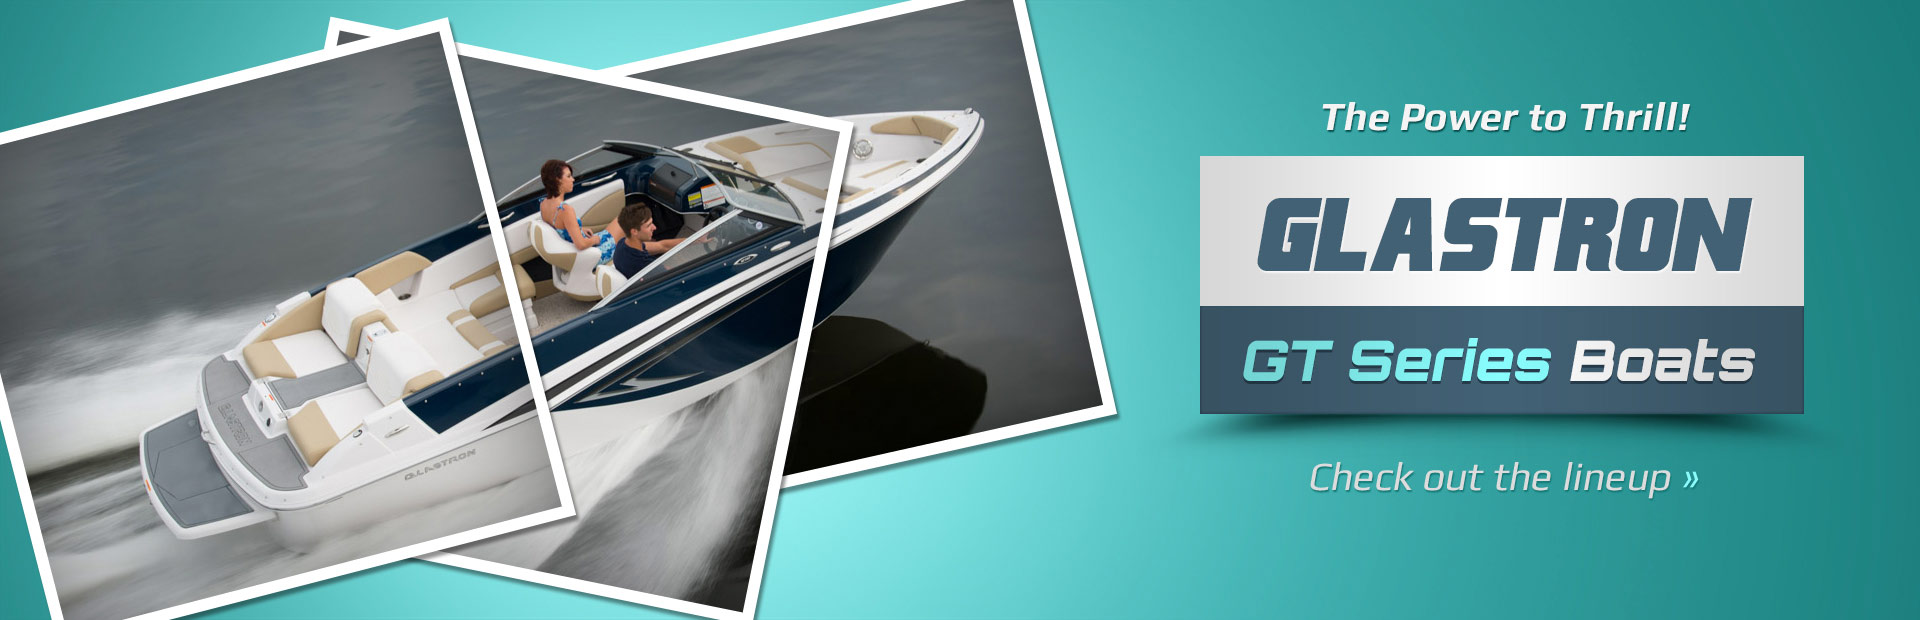 Glastron GT Series Boats: Click here to view the showcase!